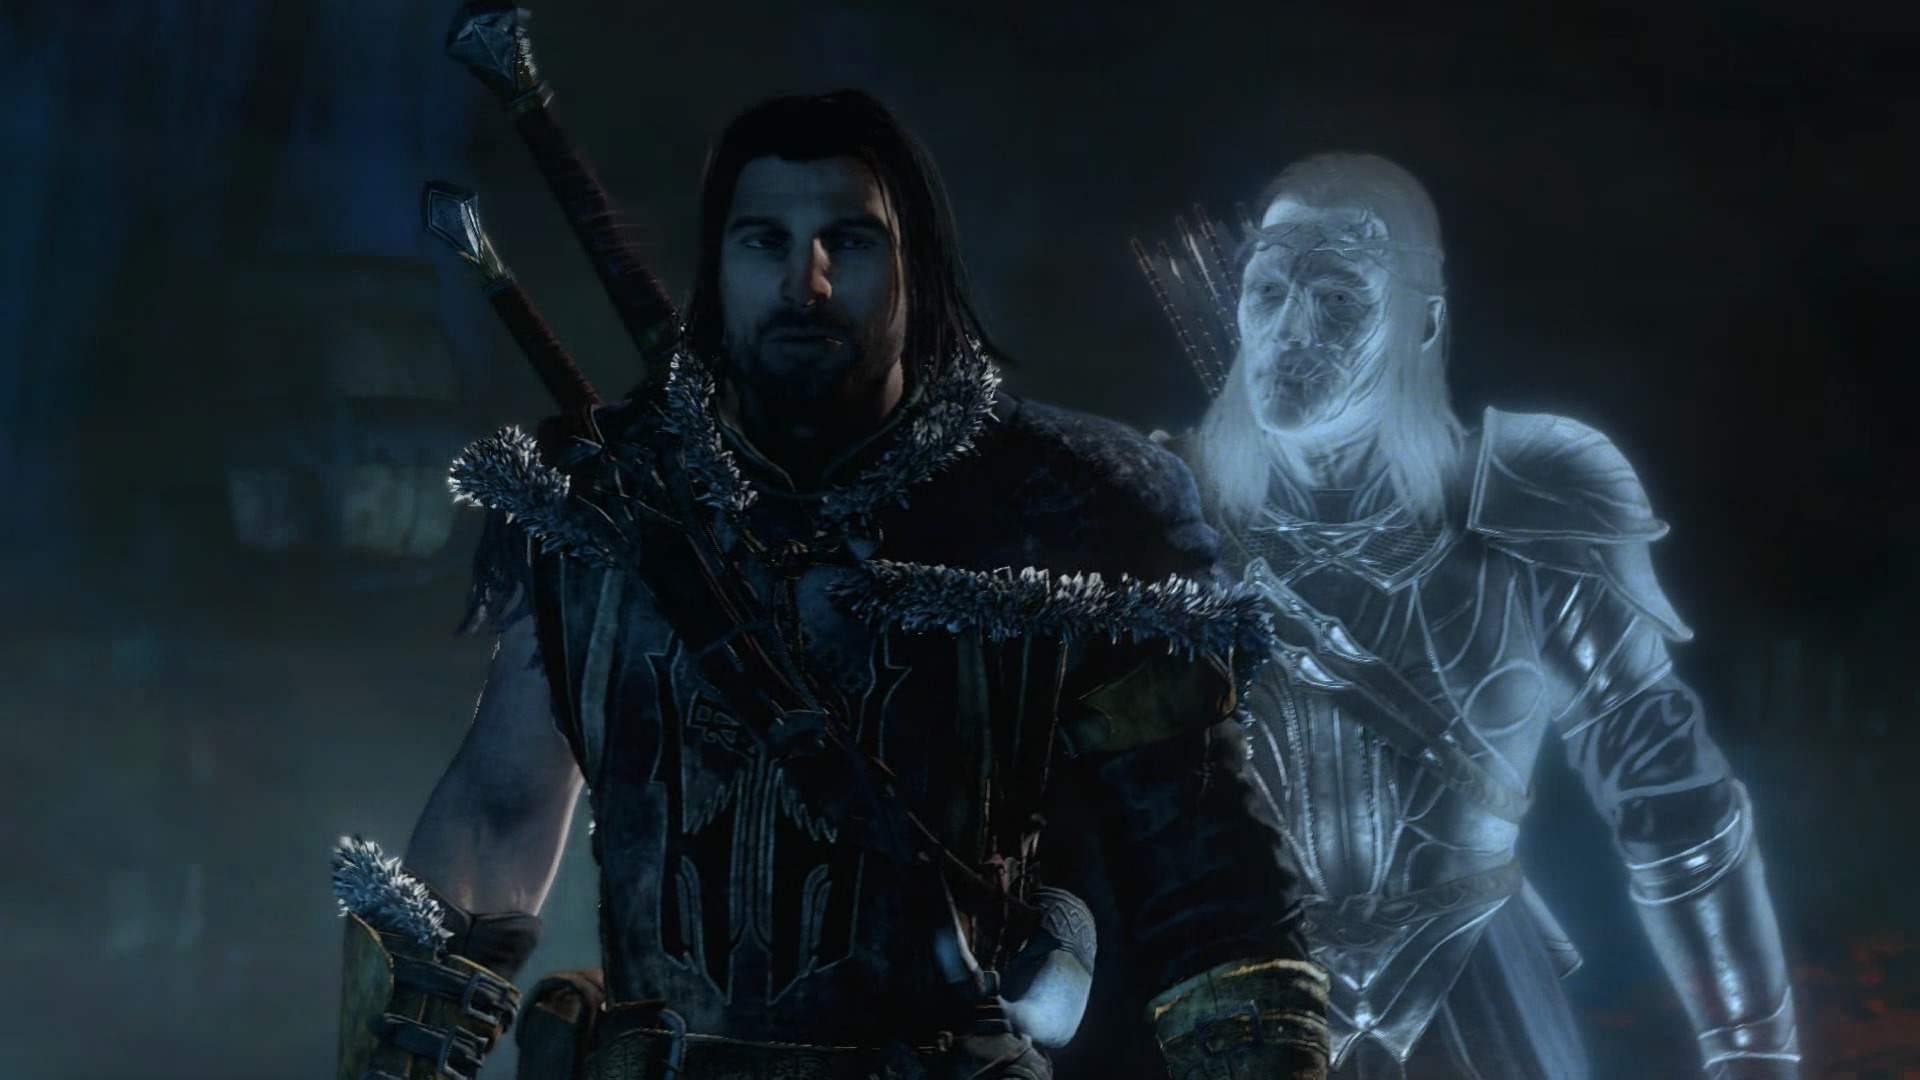 Wallpaper Hd Lord Of The Rings Shadow Of Mordor Tips How To Find Epic Runes Catch